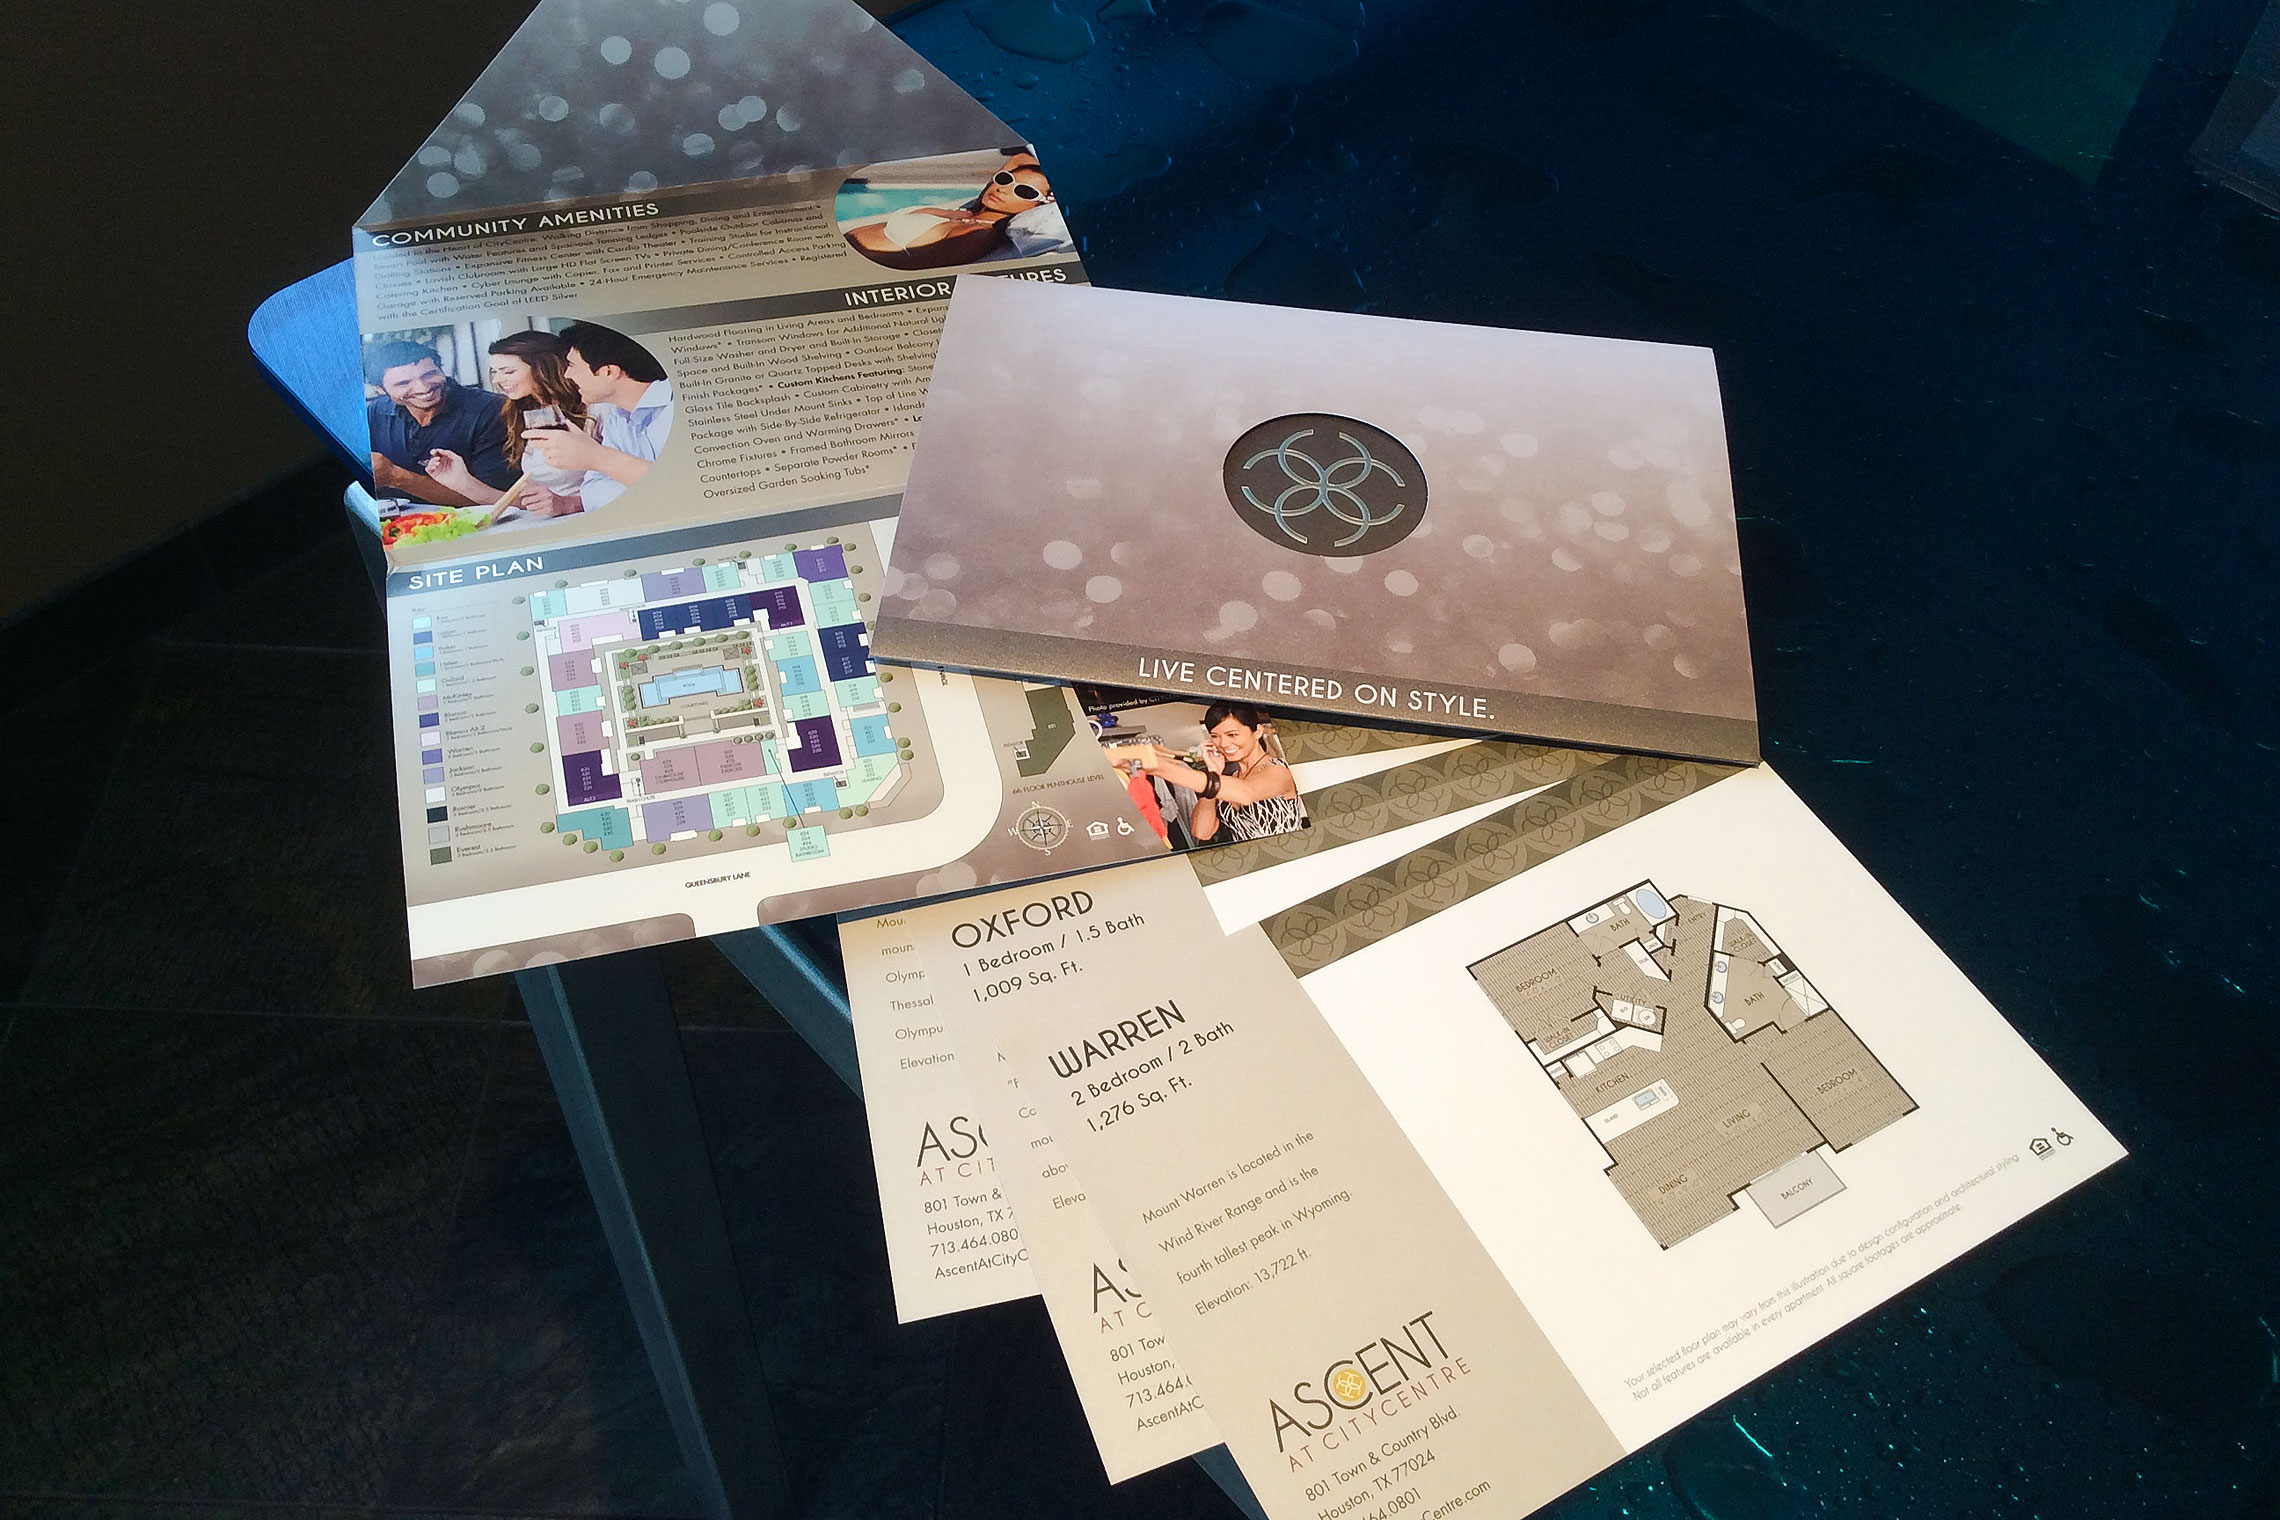 Ascent at CITYCENTRE Collateral - Pocket Folder Brochure, Amenity Fold-Out and Floor Plan Inserts